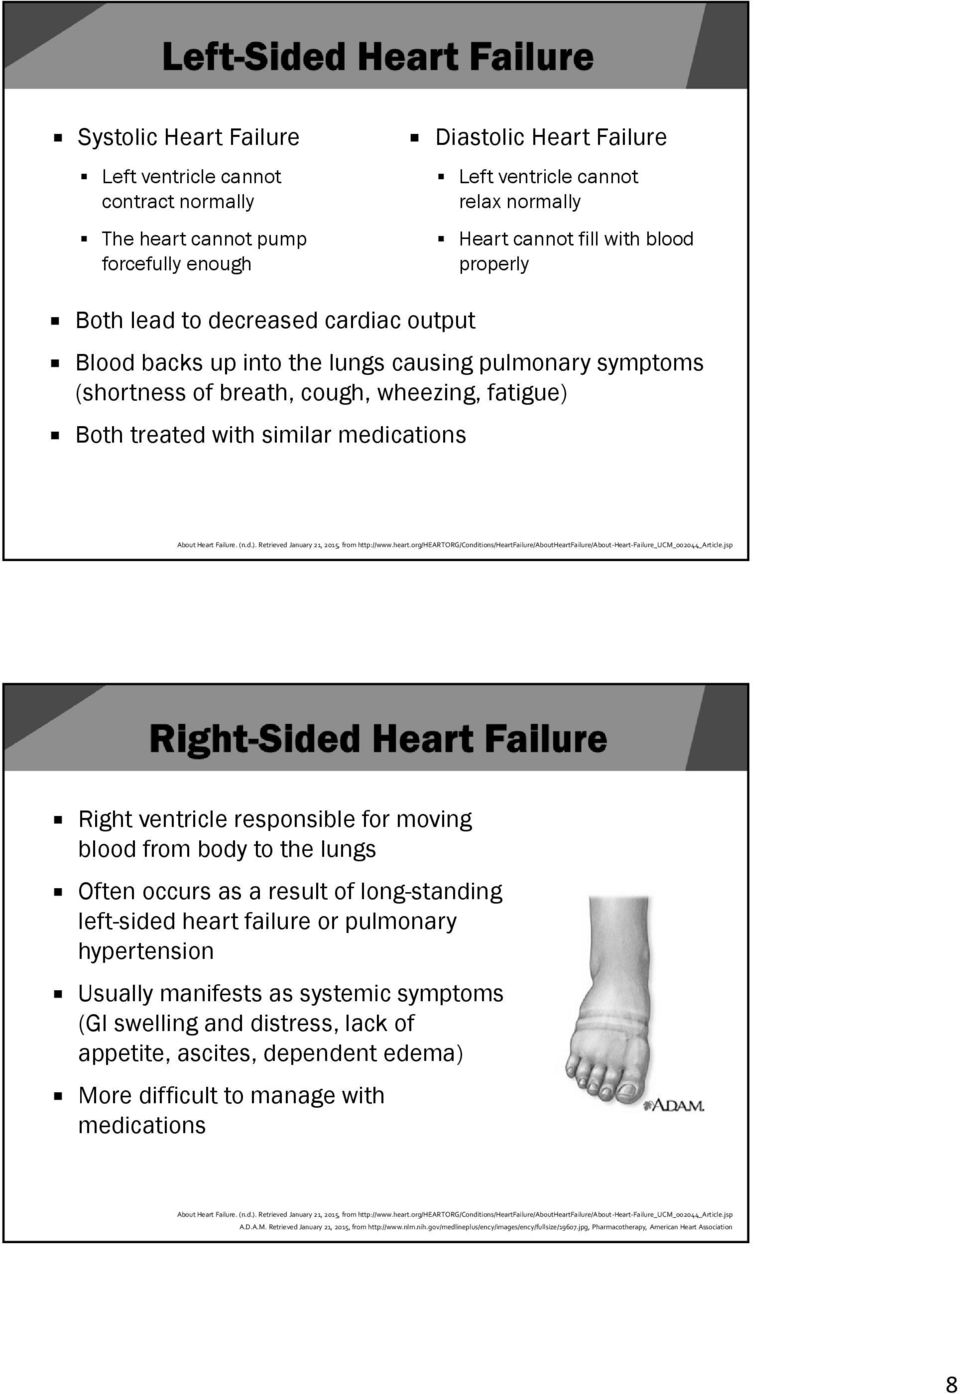 Heart Failure. (n.d.). Retrieved January 21, 2015, from http://www.heart.org/heartorg/conditions/heartfailure/aboutheartfailure/about Heart Failure_UCM_002044_Article.